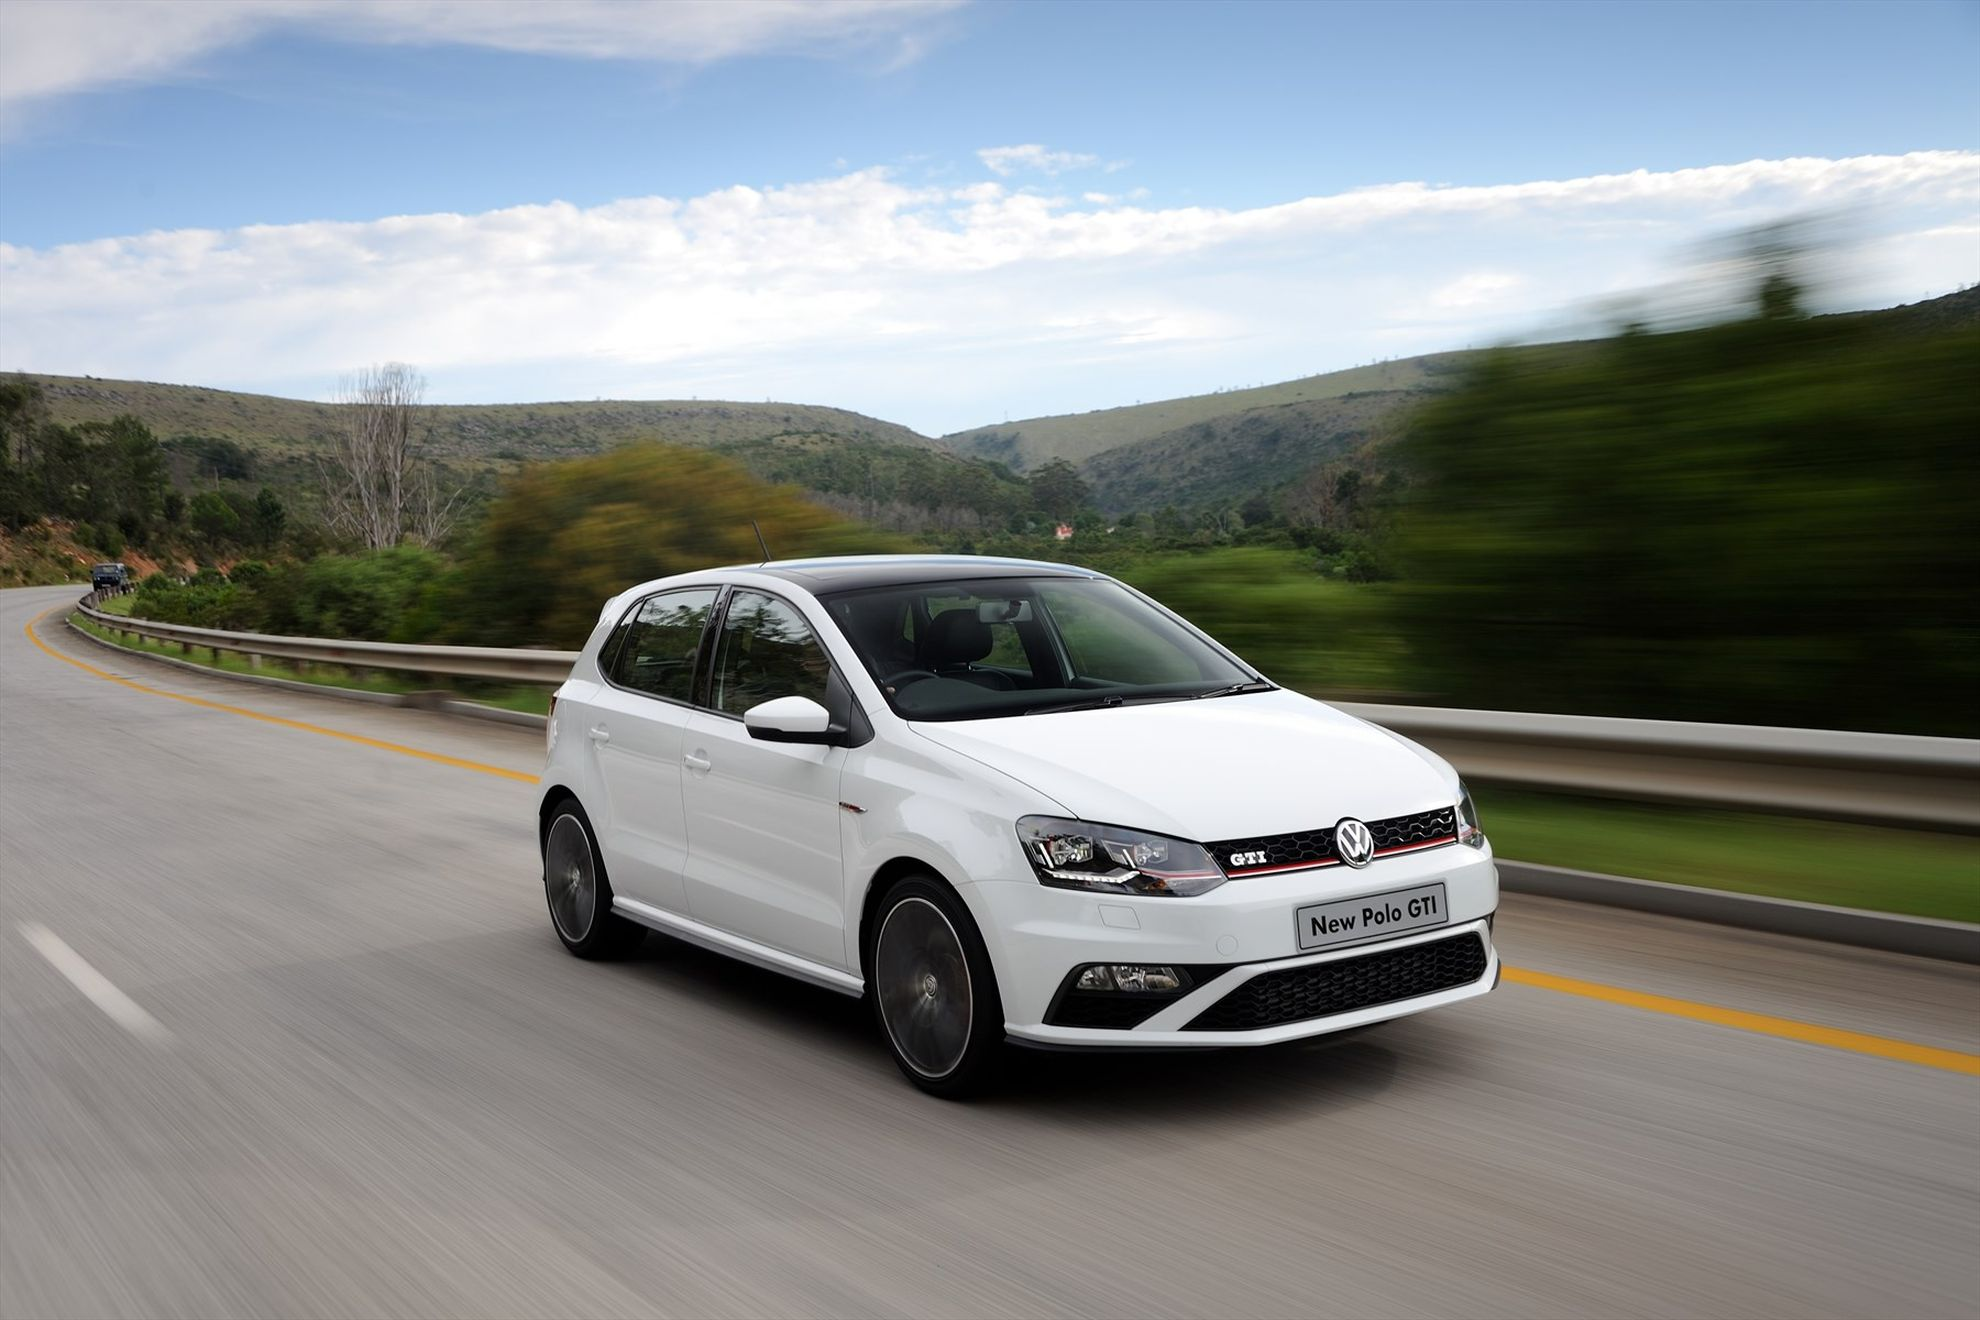 The-New-Volkswagen-Polo-GTI-in-South-Africa-main